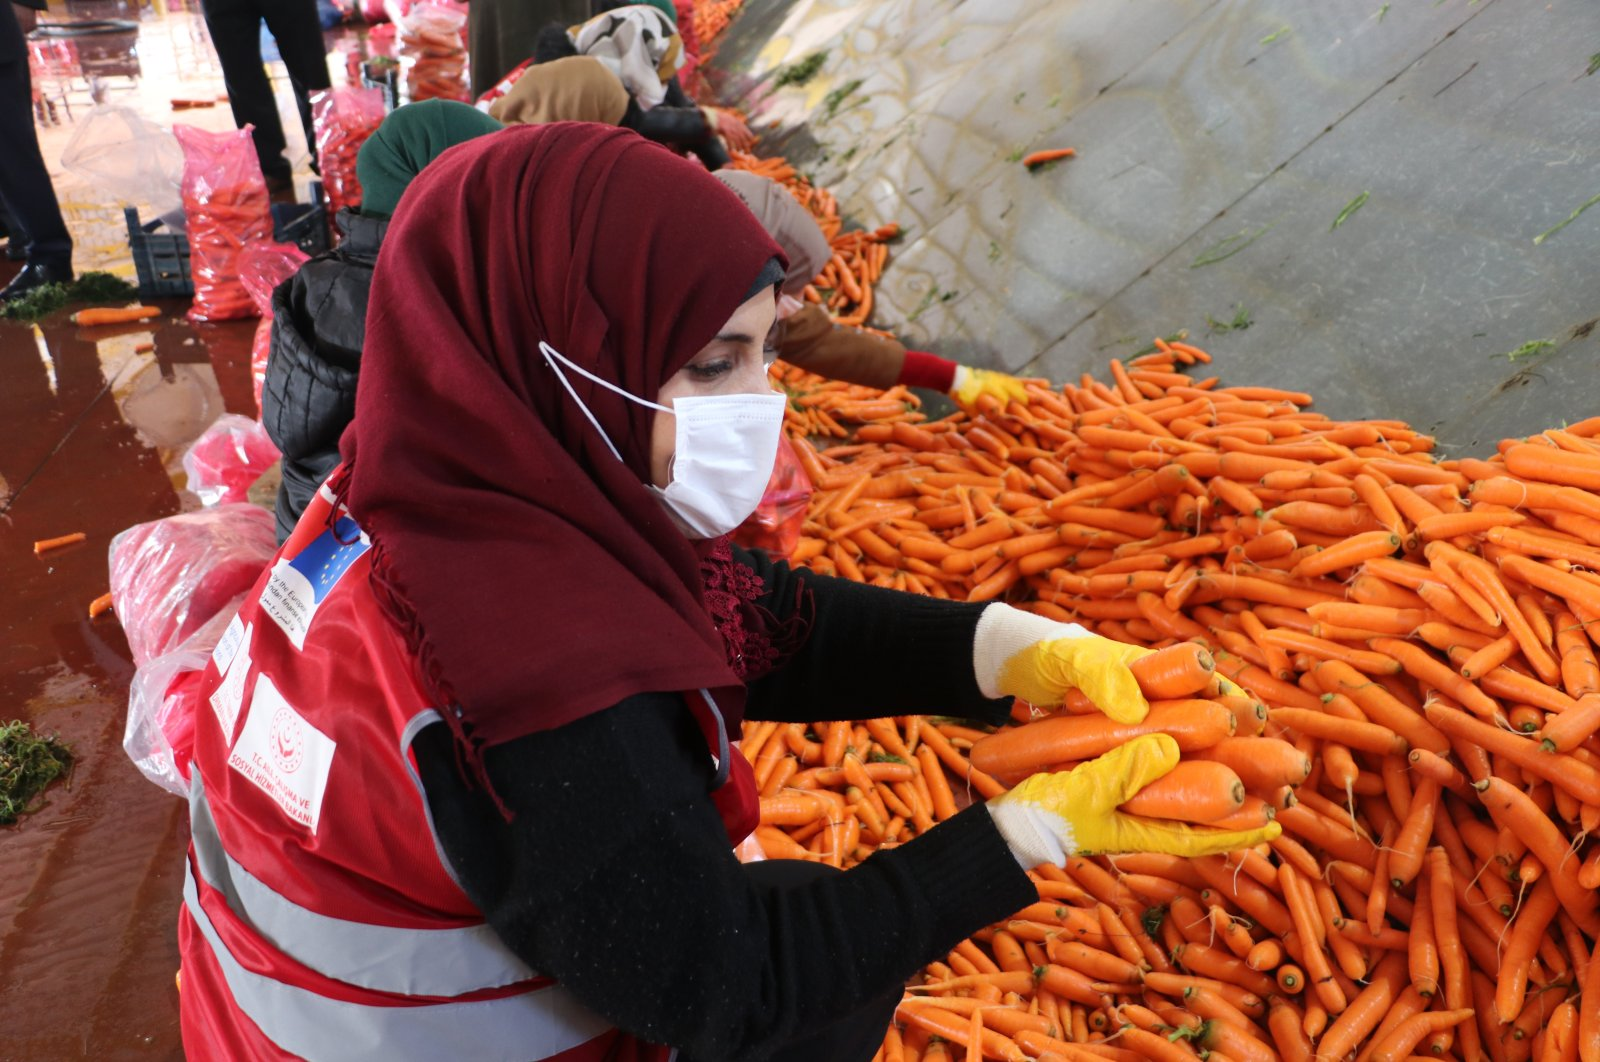 A woman practices carrot packaging at the school in Hatay, southern Turkey, Jan. 4, 2021. (AA Photo)